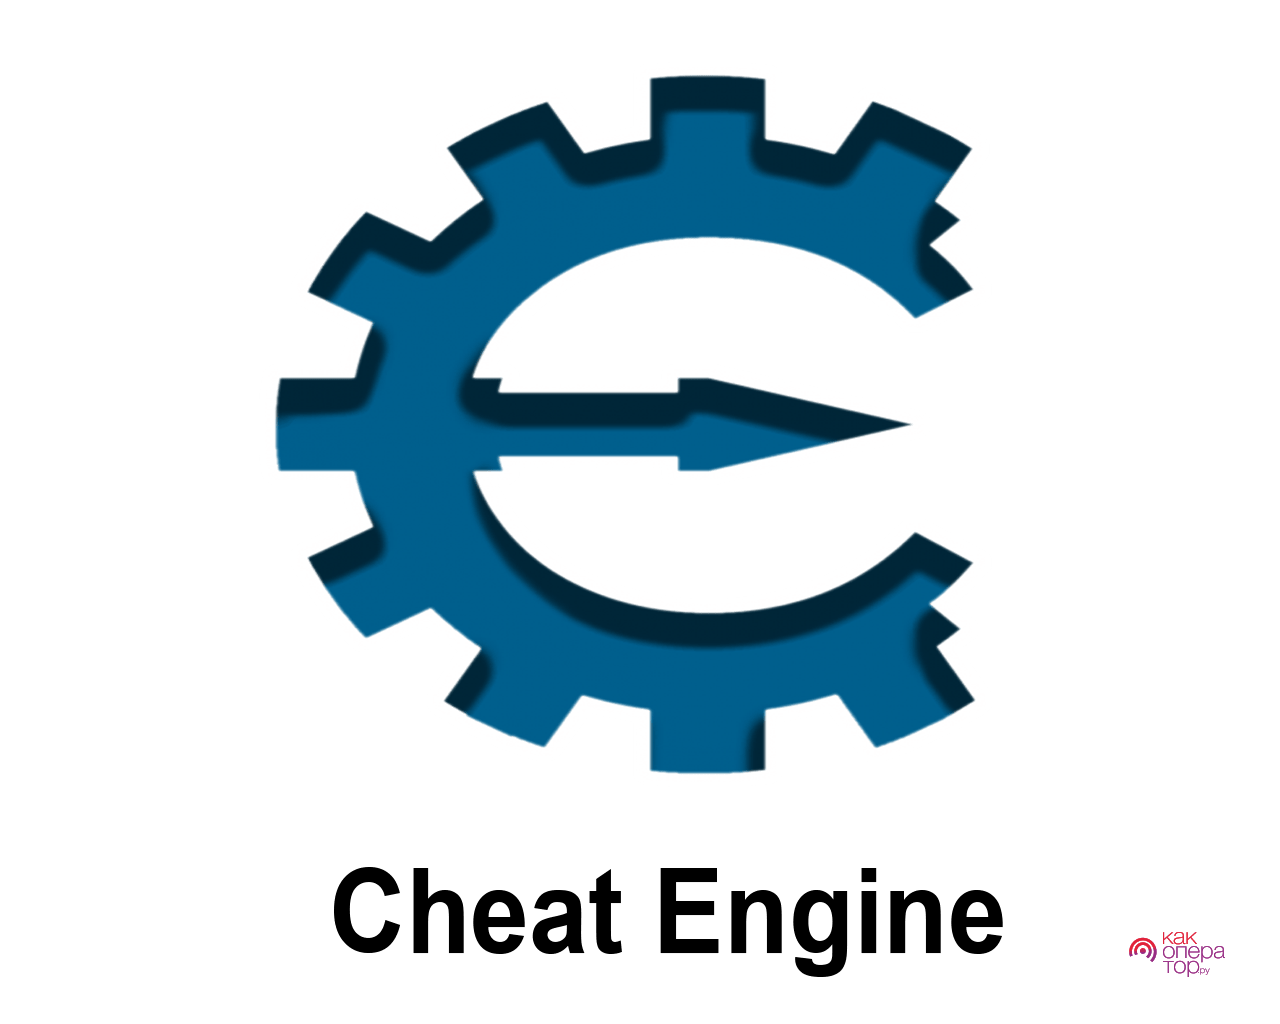 Cheat Engine Download for Free - 2021 Latest Version